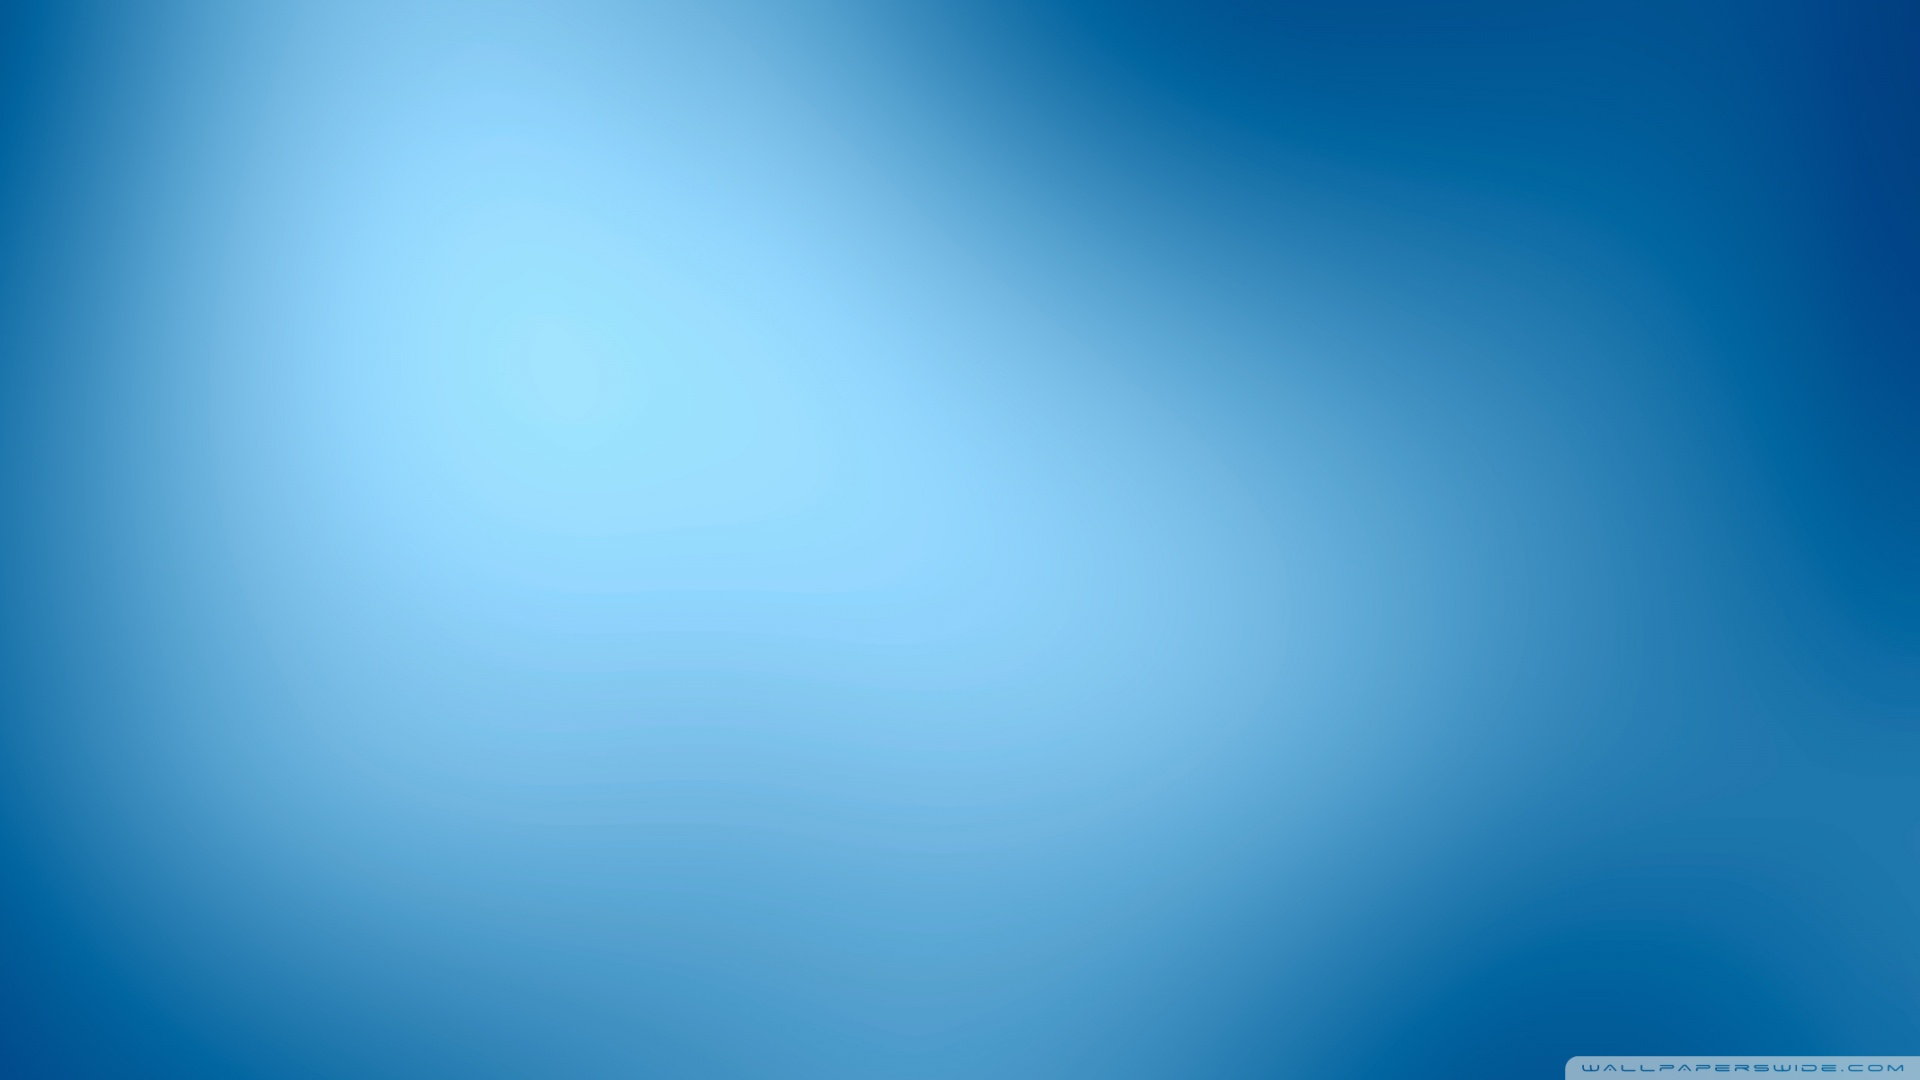 Background blue photo abstract simple   1474562 1920x1080